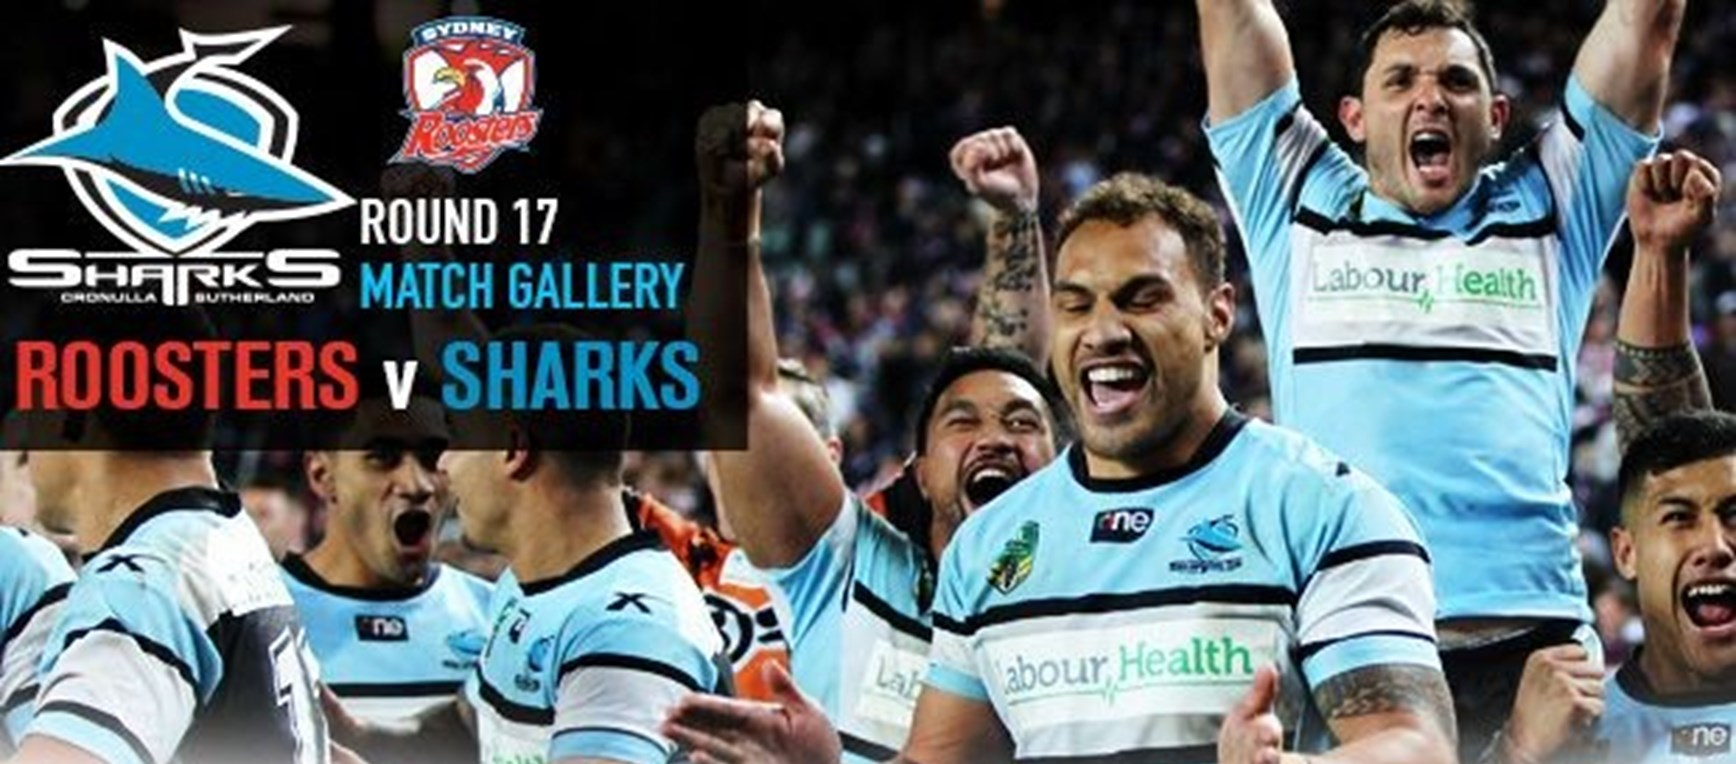 Roosters v Sharks, Allianz Stadium